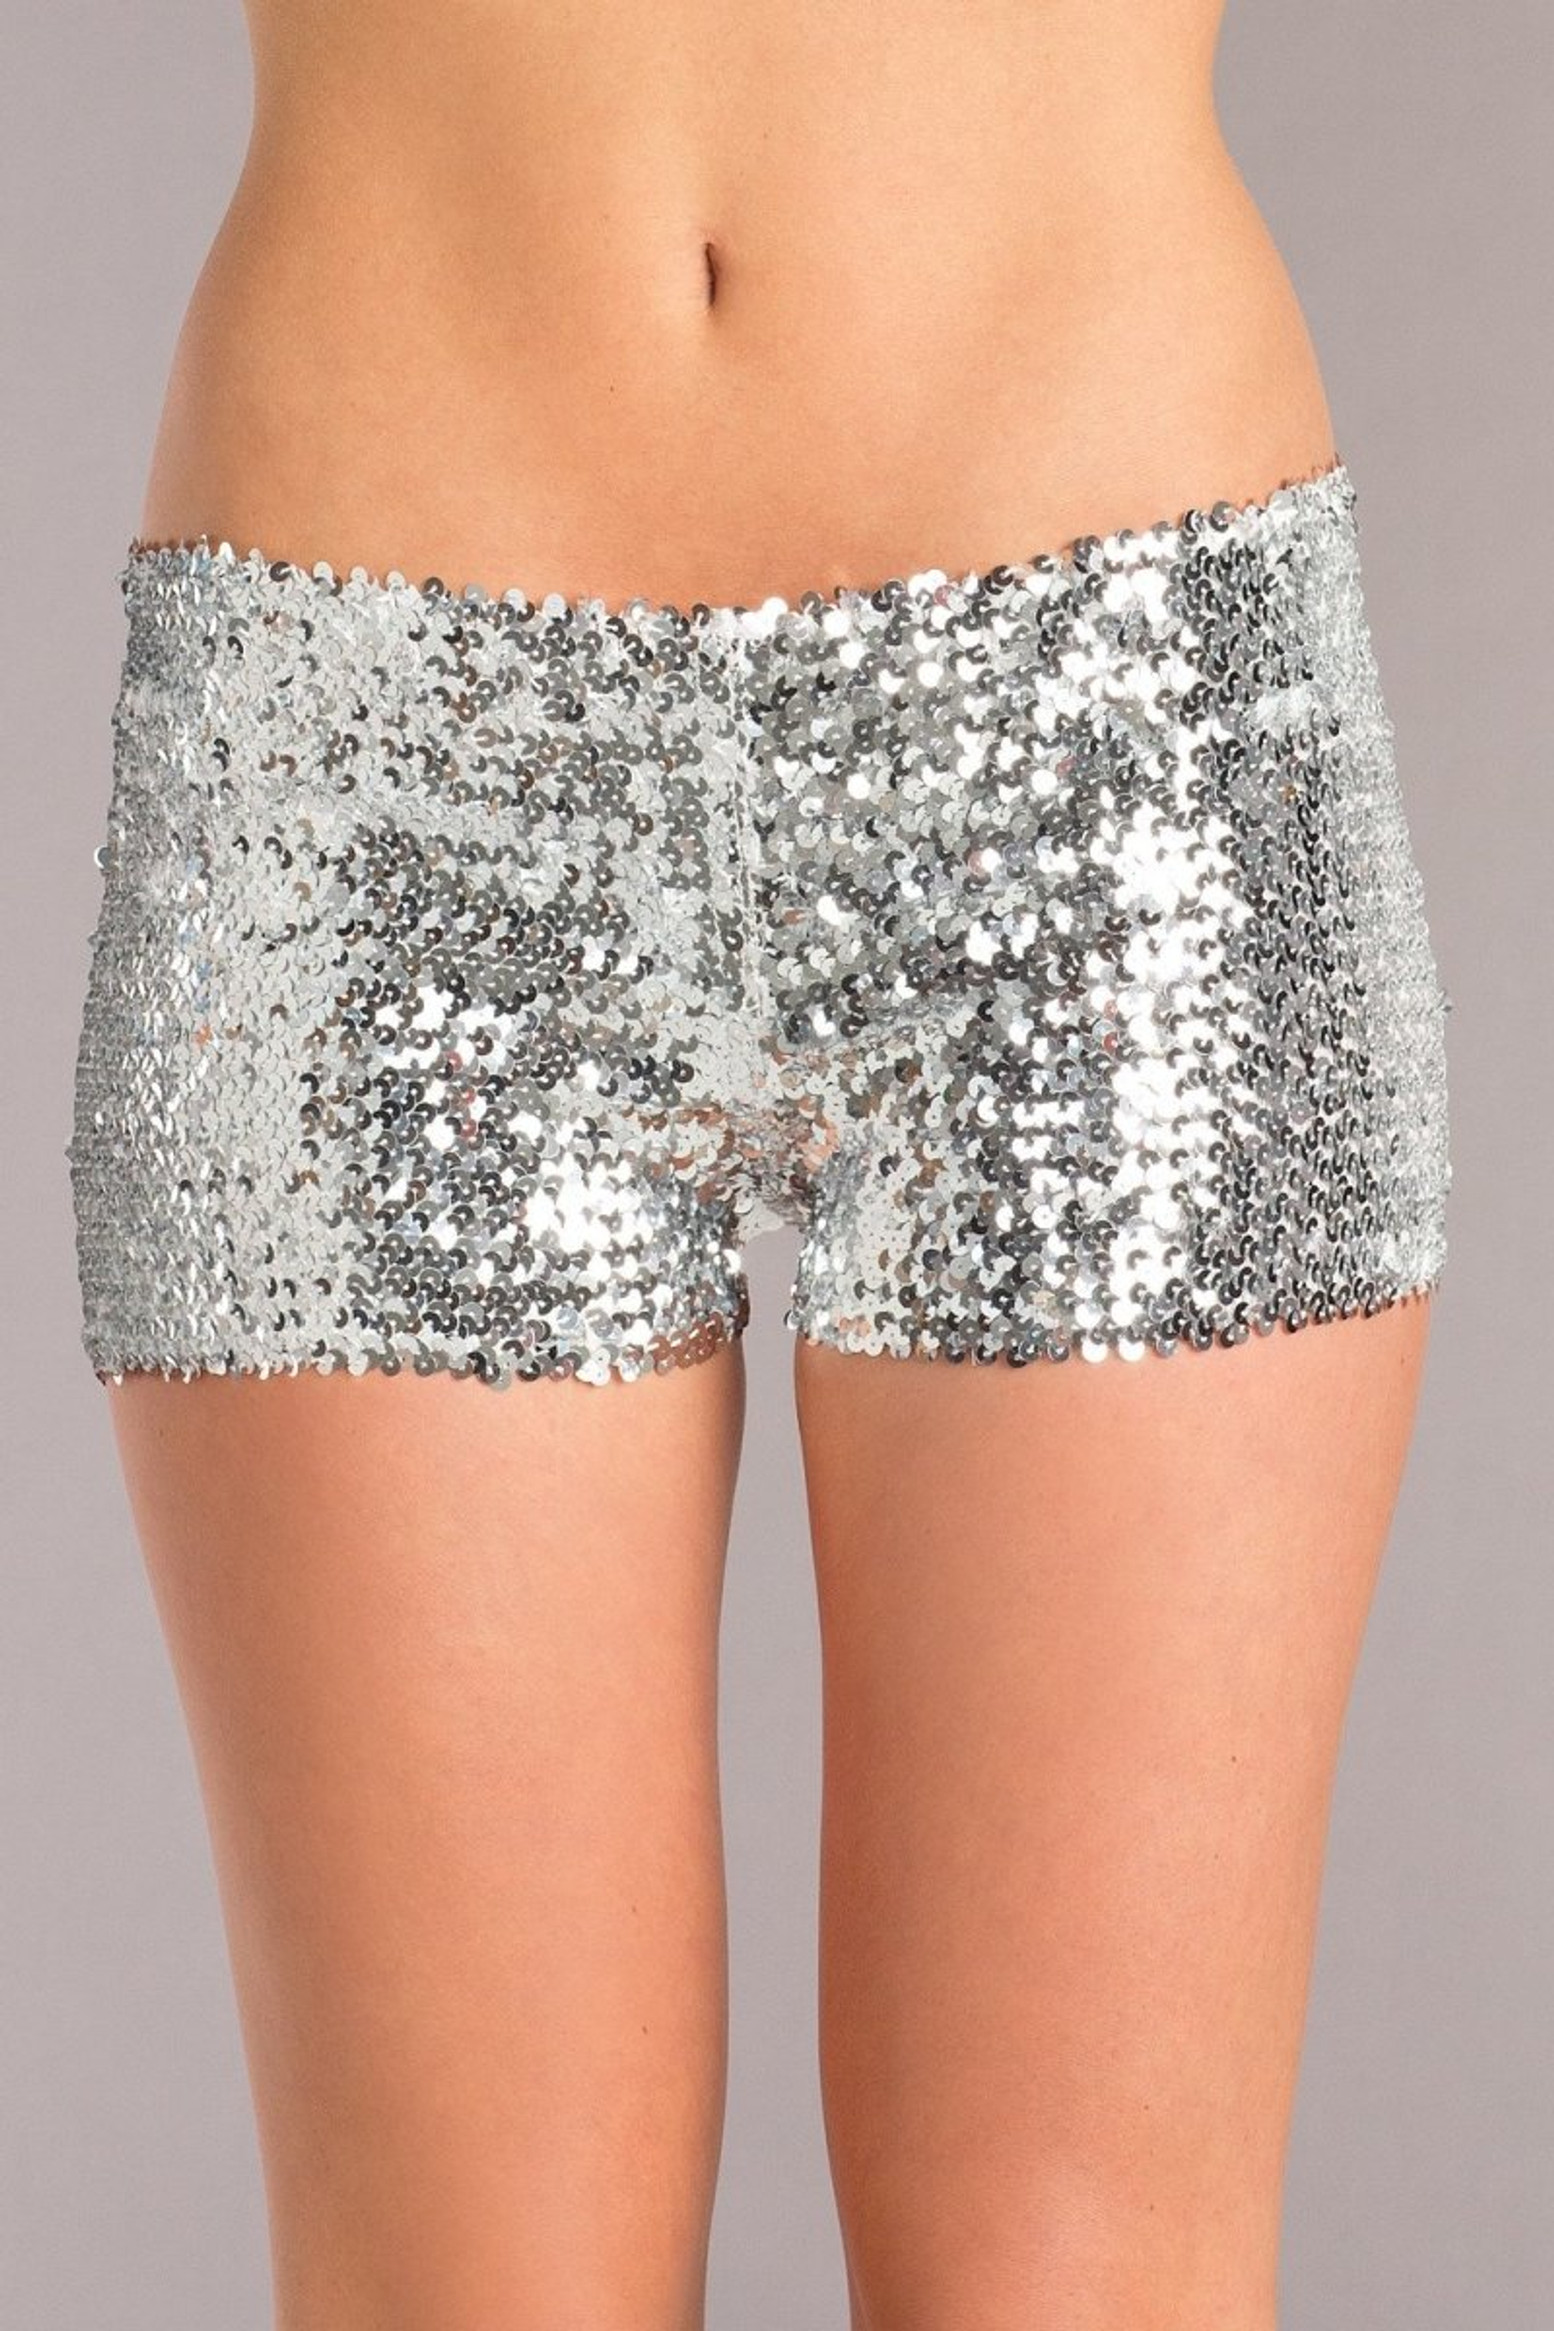 BW1676SL Sequin Booty Shorts - Silver